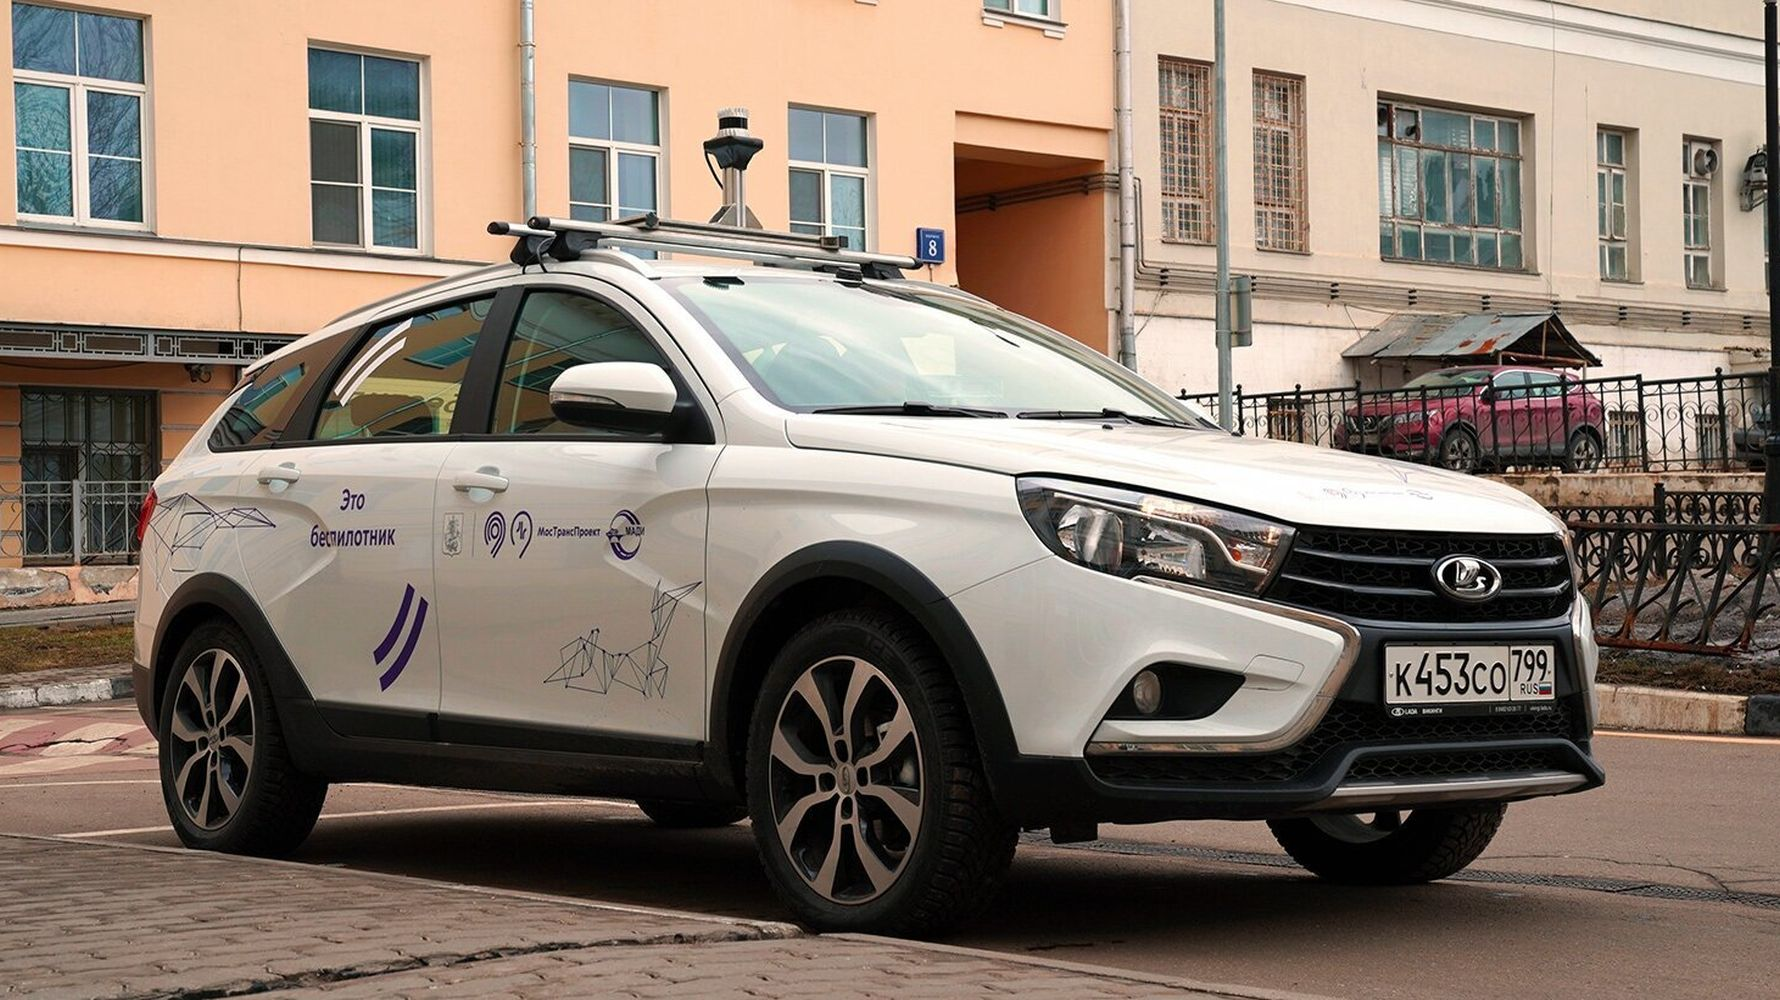 driverless domestic car of russia started to be used in a hospital in moscow